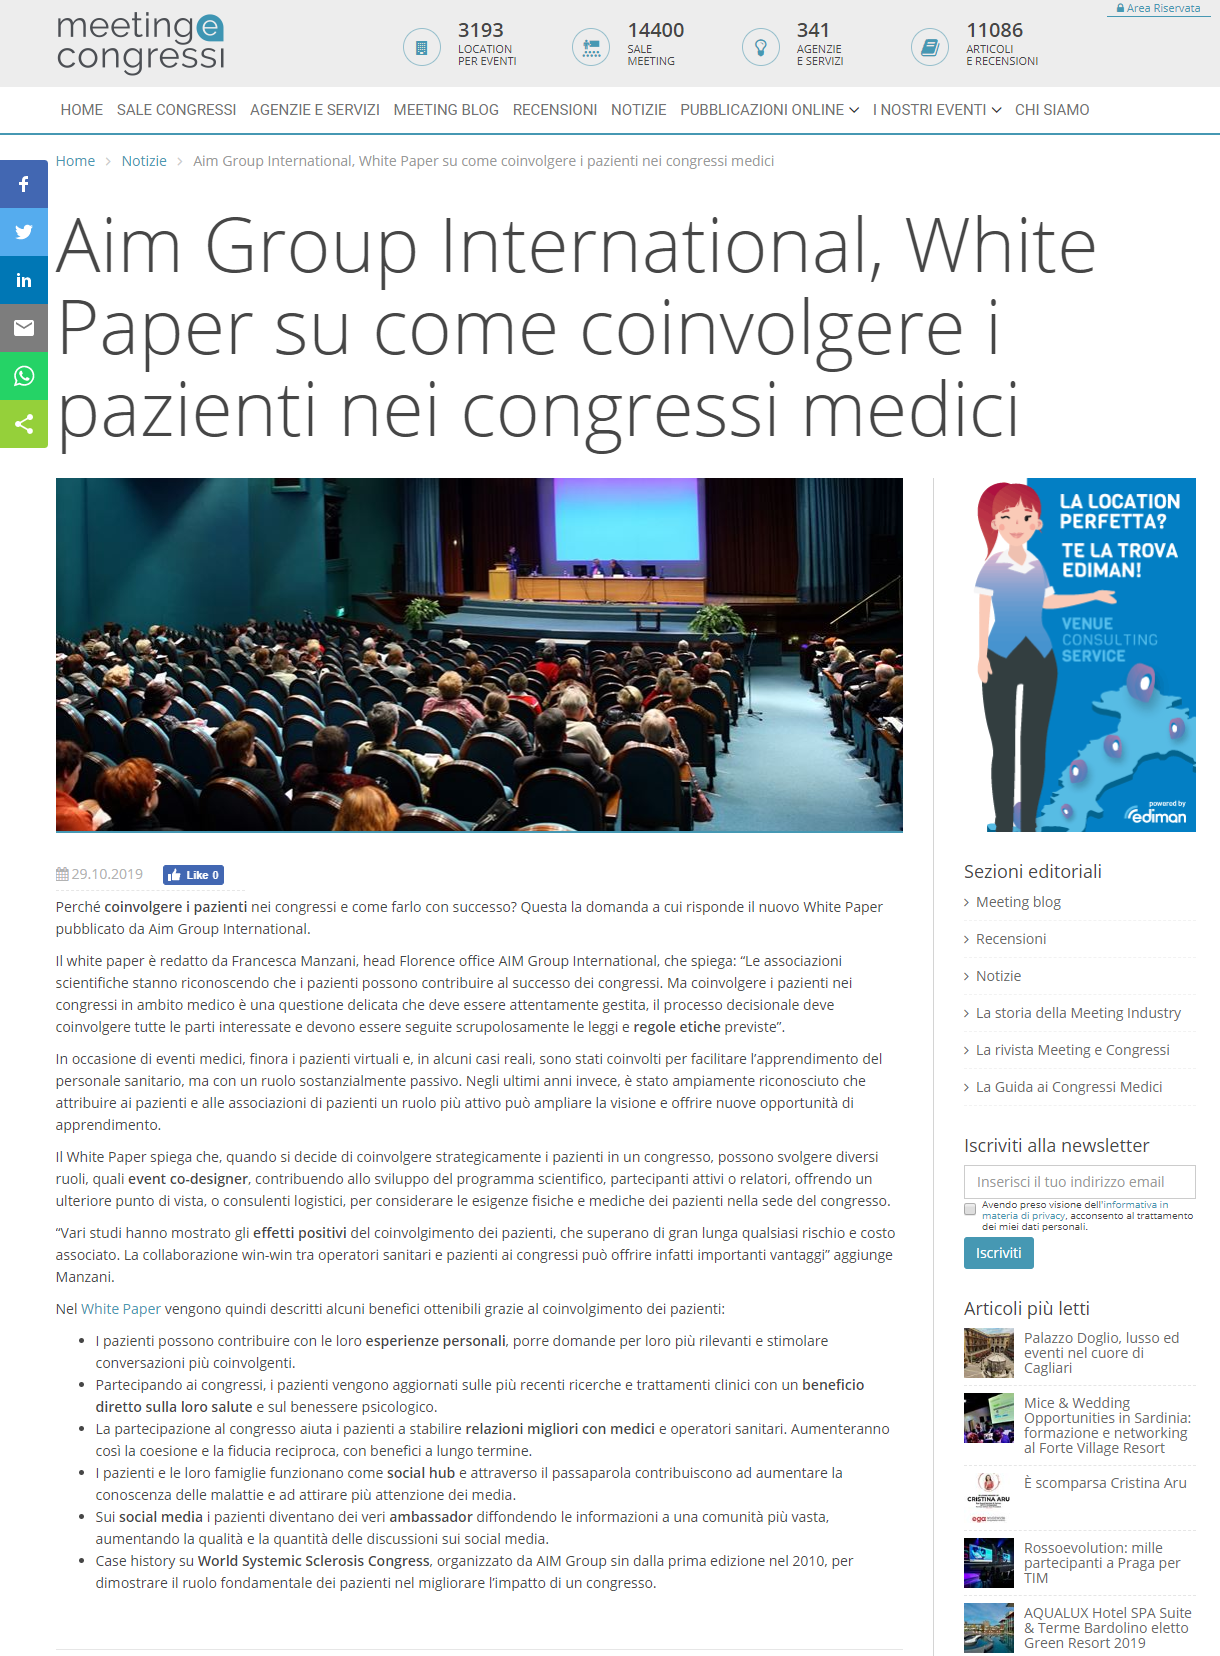 Press Review Aim Group